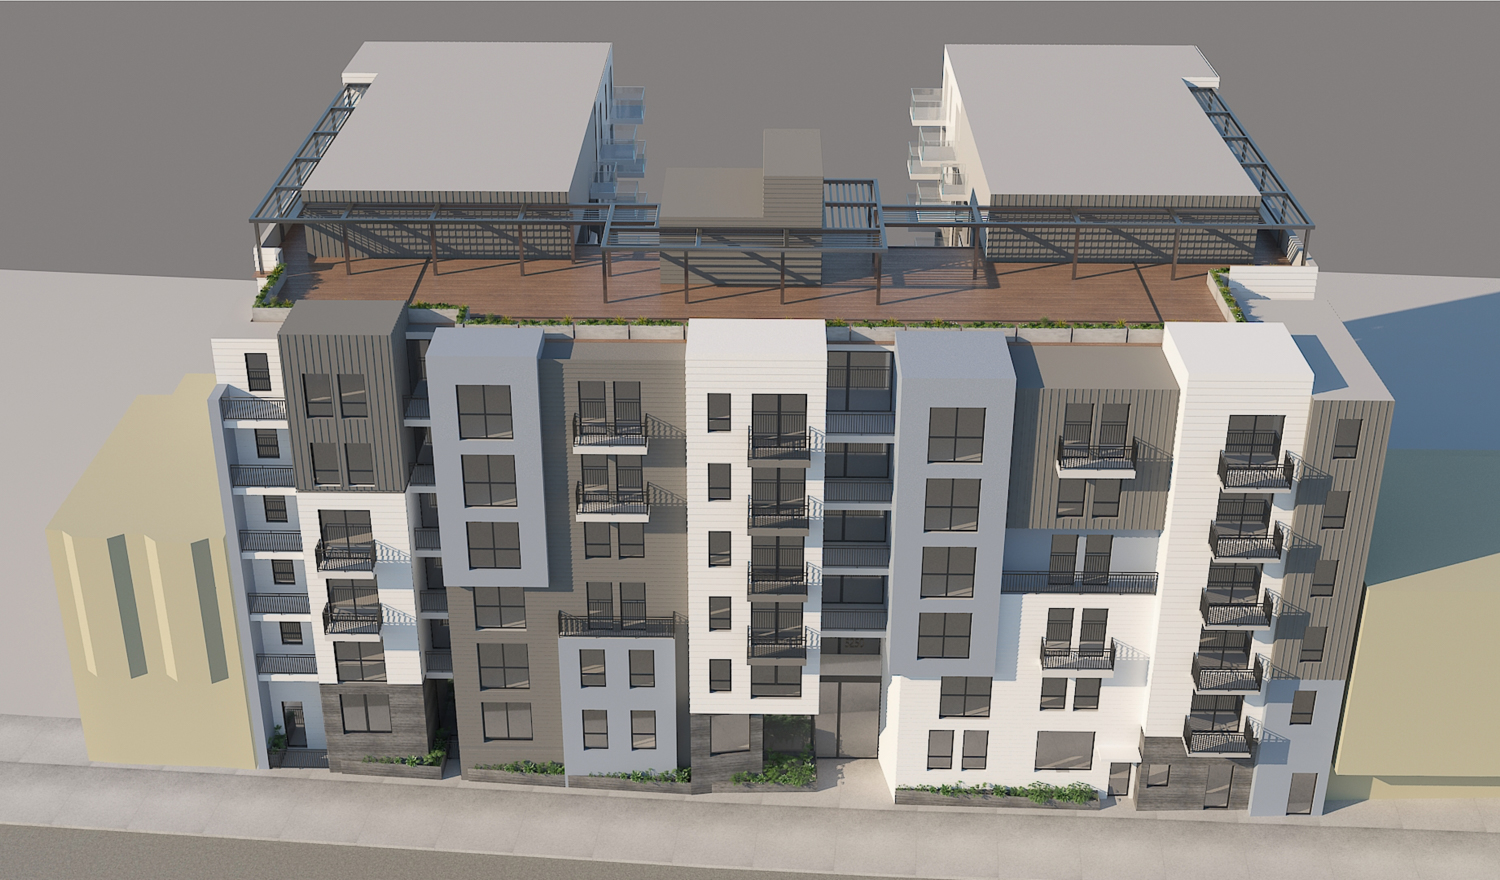 5250 3rd Street aerial perspective, rendering by Leavitt Architecture